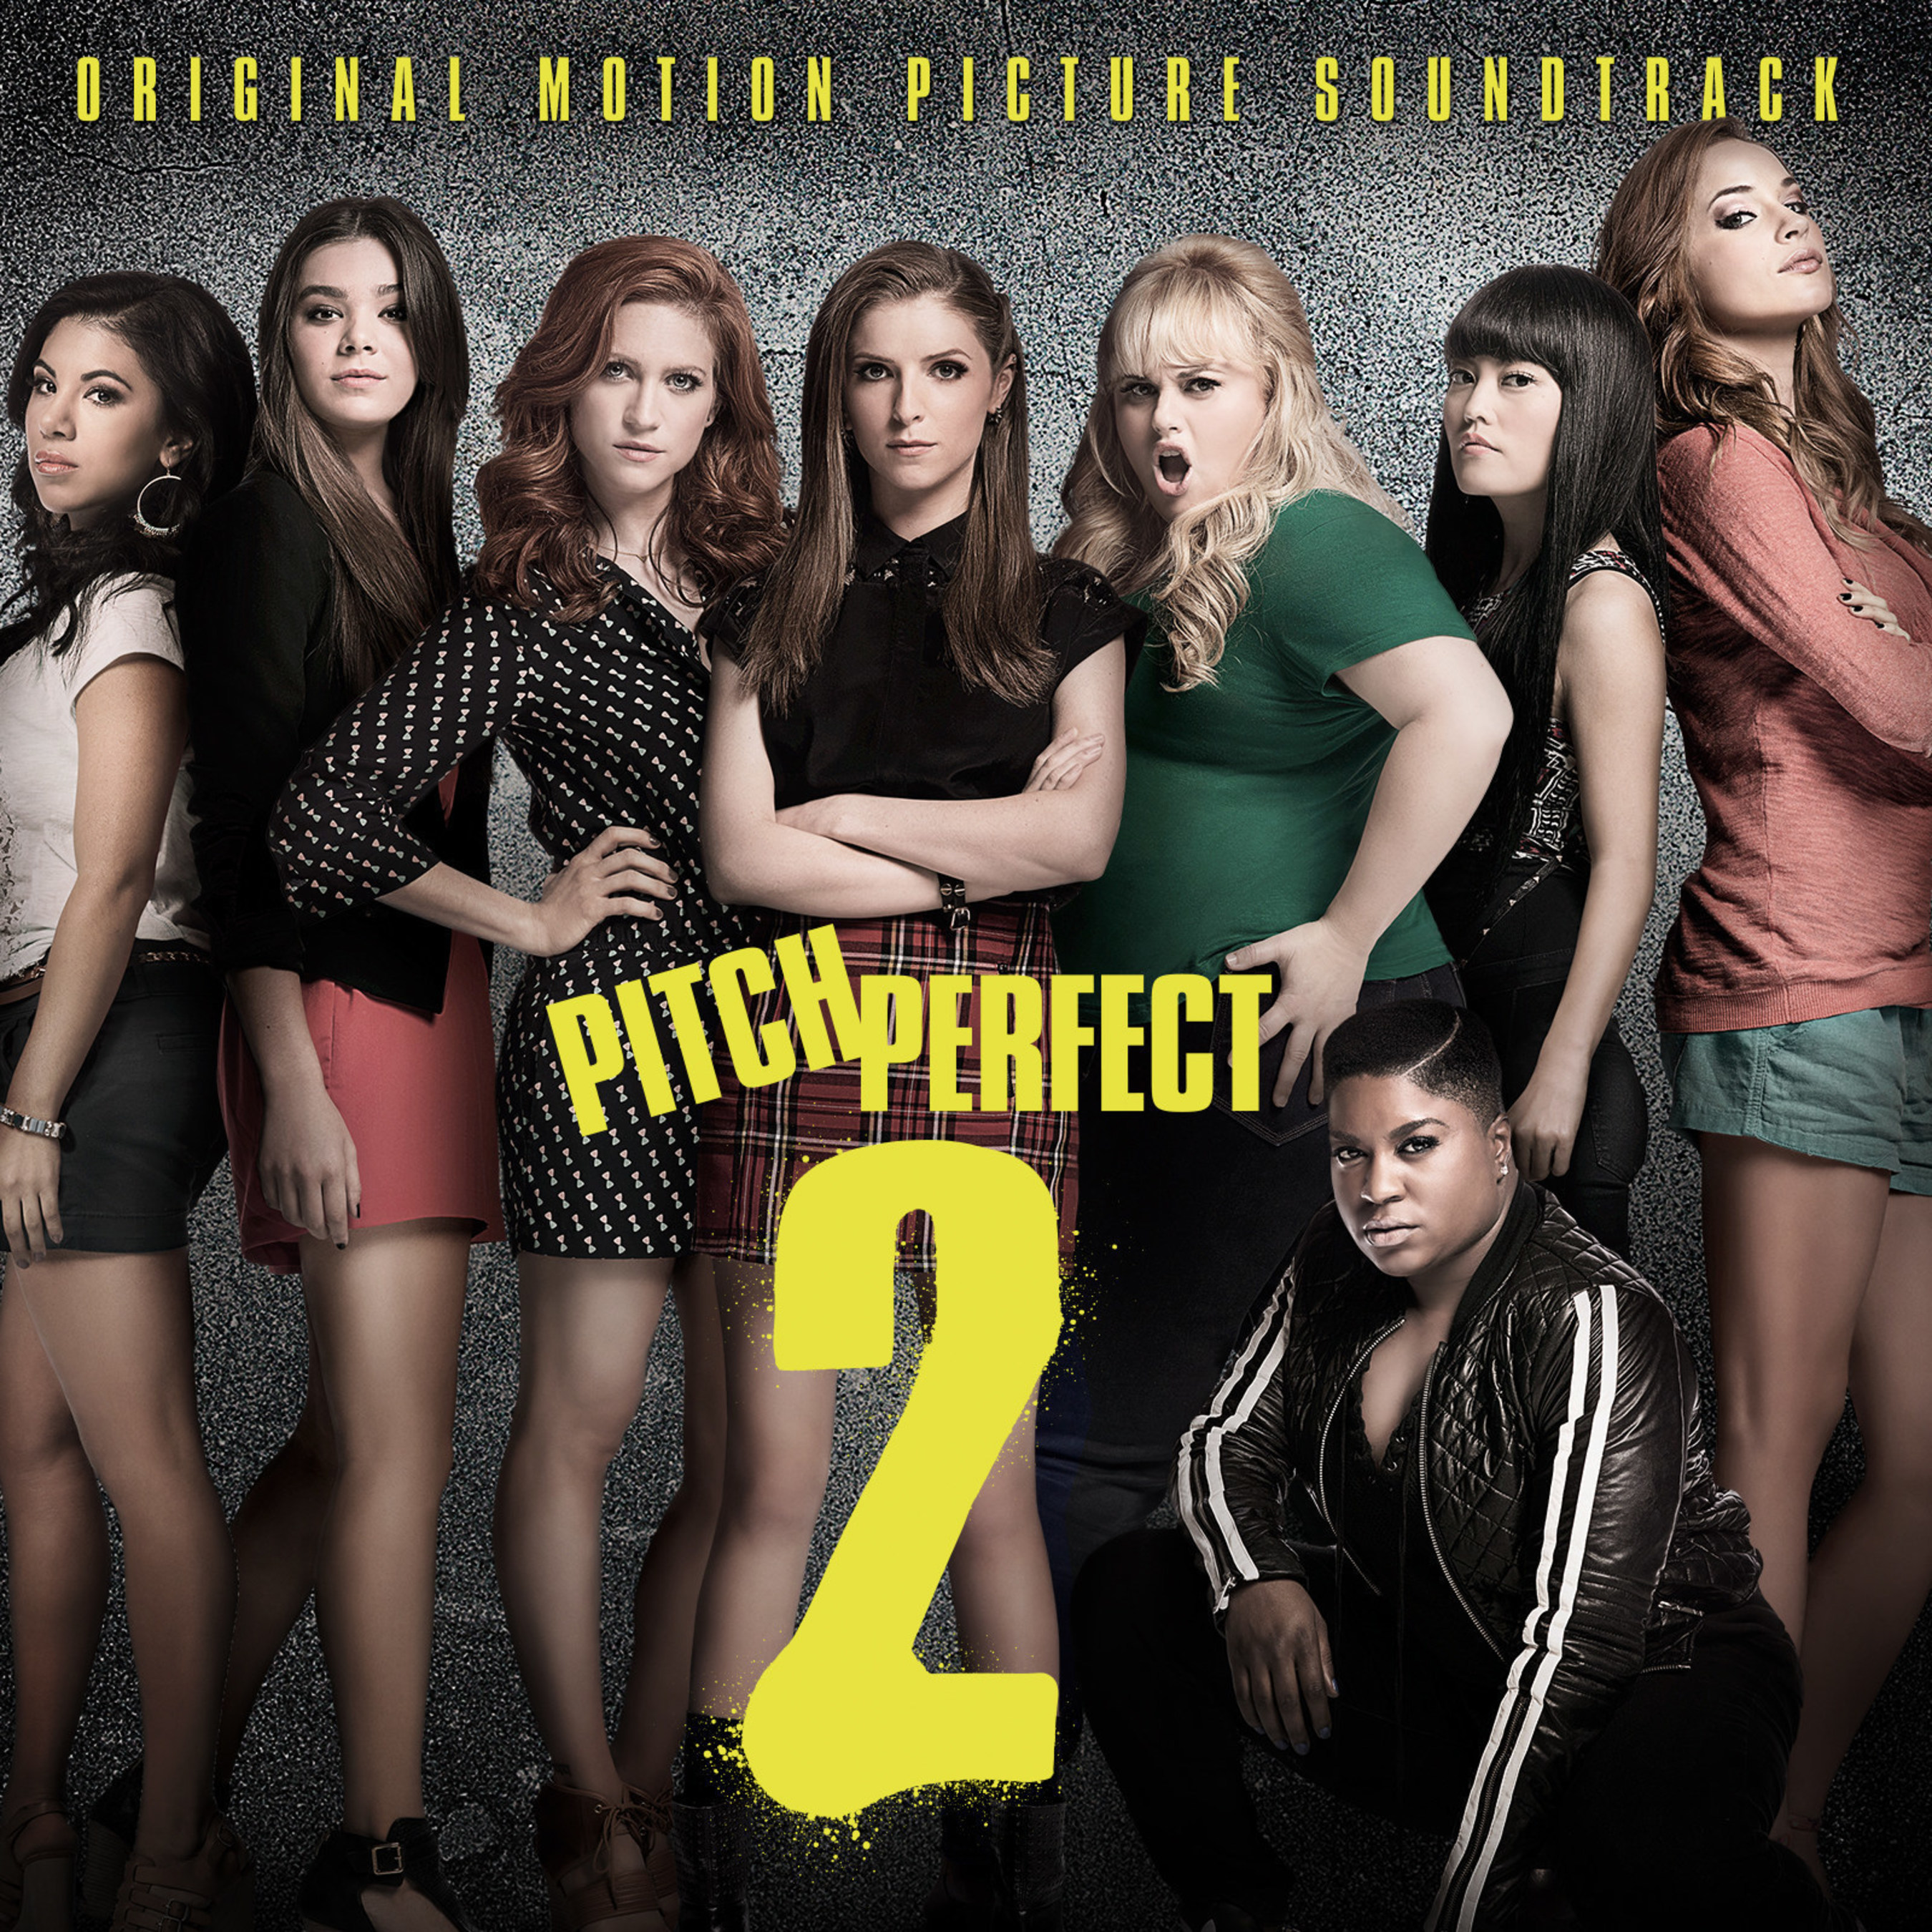 """THE BARDEN BELLAS ARE BACK!  PITCH PERFECT 2, THE FOLLOW-UP ALBUM TO SOUNDTRACK SMASH PITCH PERFECT, AVAILABLE FOR PRE-ORDER TODAYThe first single, """"Flashlight,"""" performed by multiplatinum-selling, GRAMMY? nominated artist Jessie J hits radio today. """"Flashlight"""" was written by superstars Sam Smith and Sia.Video premieres tonight on VEVO.www.pitchperfectmovie.com  #pitchperfect2"""